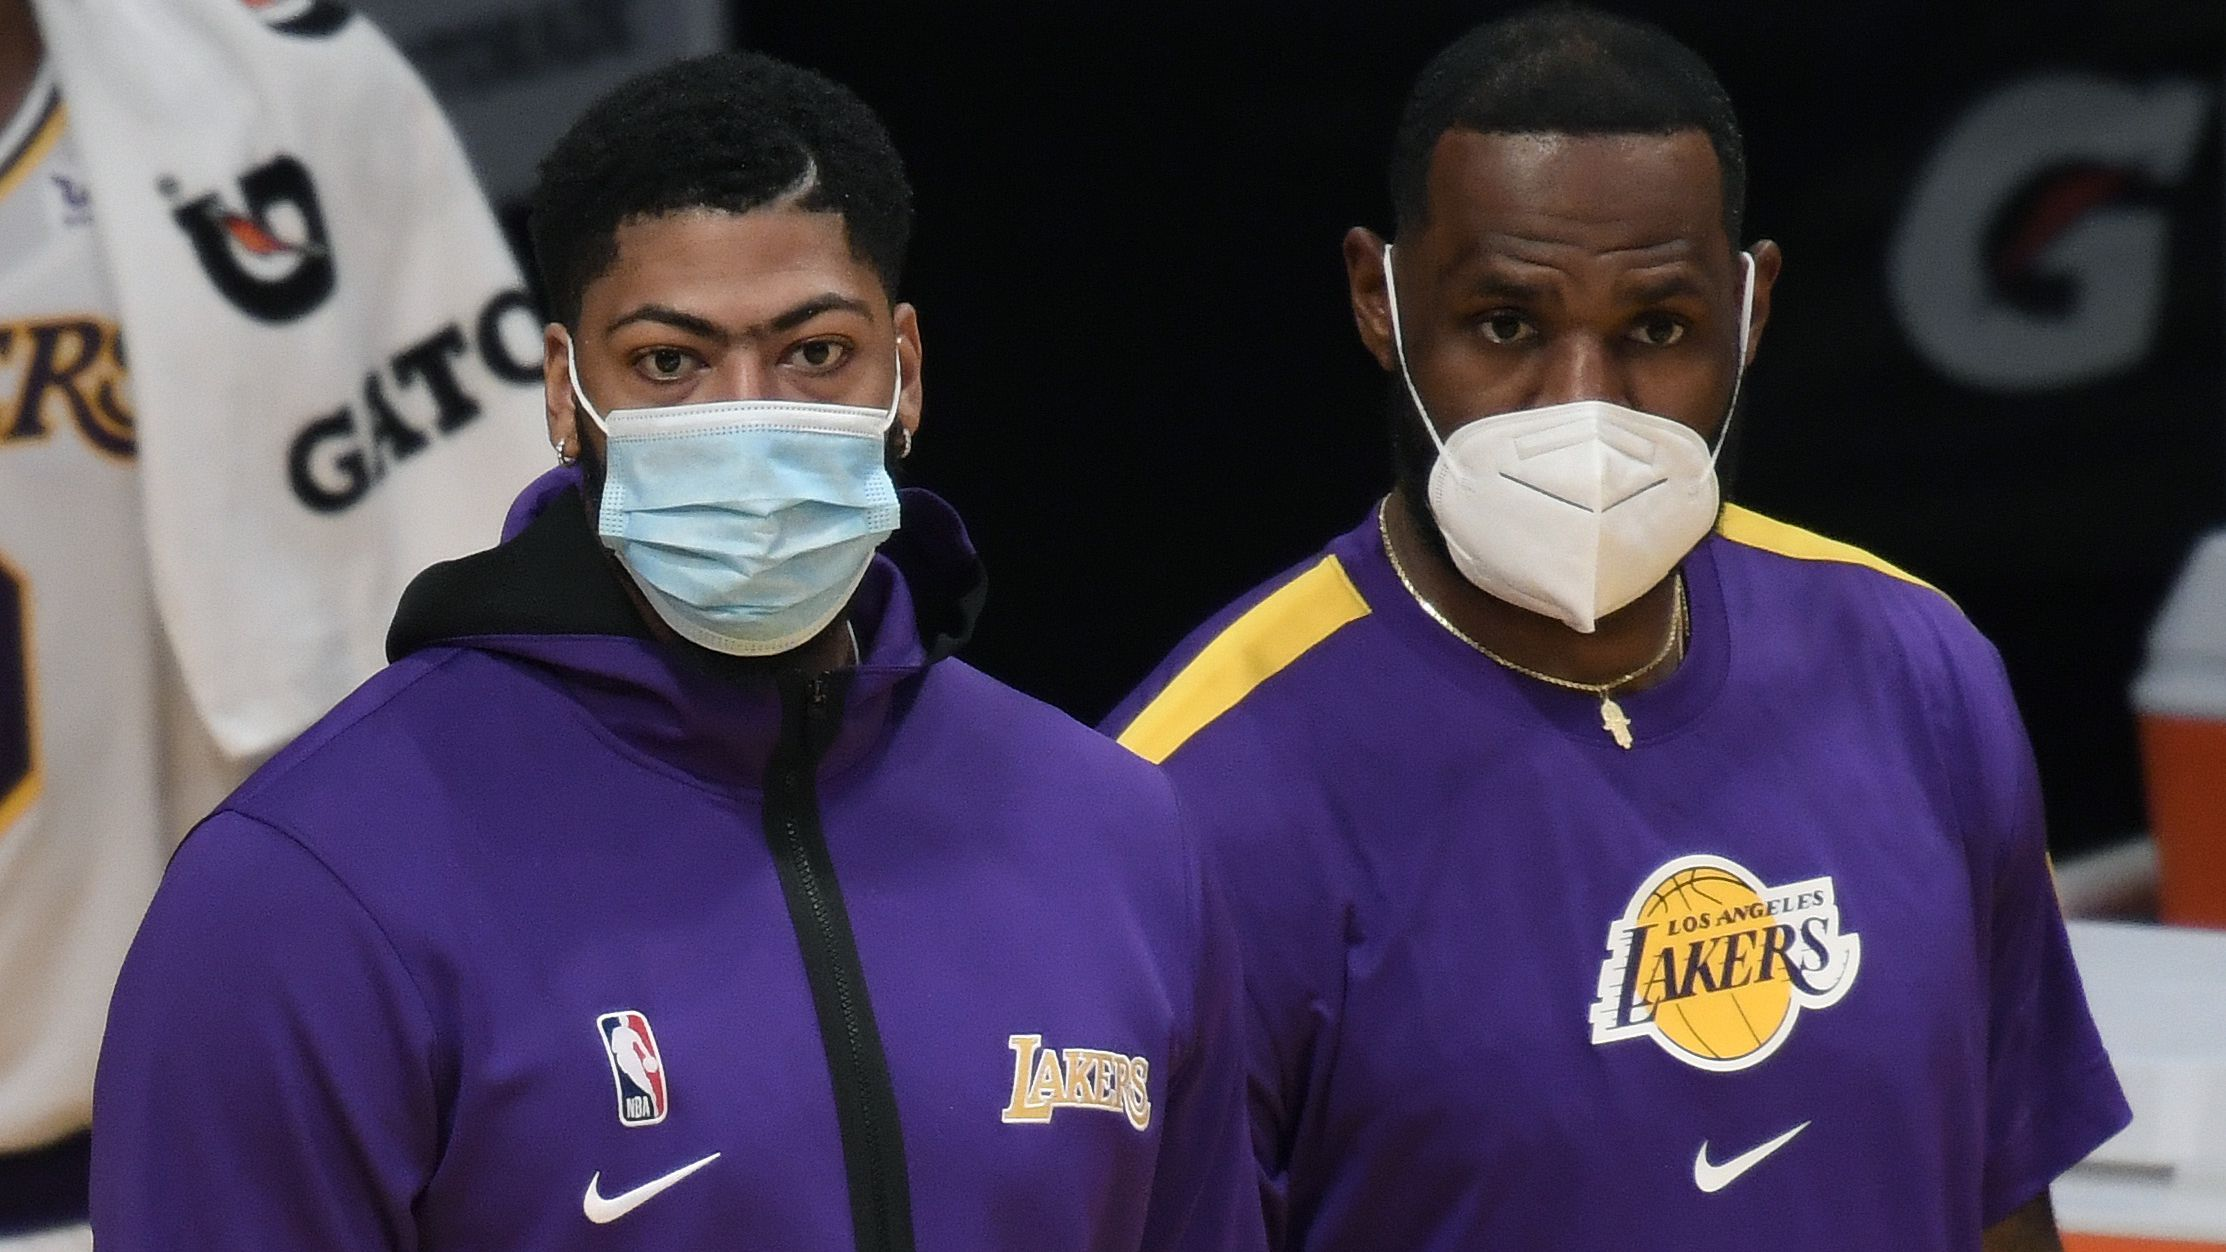 Anthony Davis and LeBron James of the Los Angeles Lakers watch a preseason game.